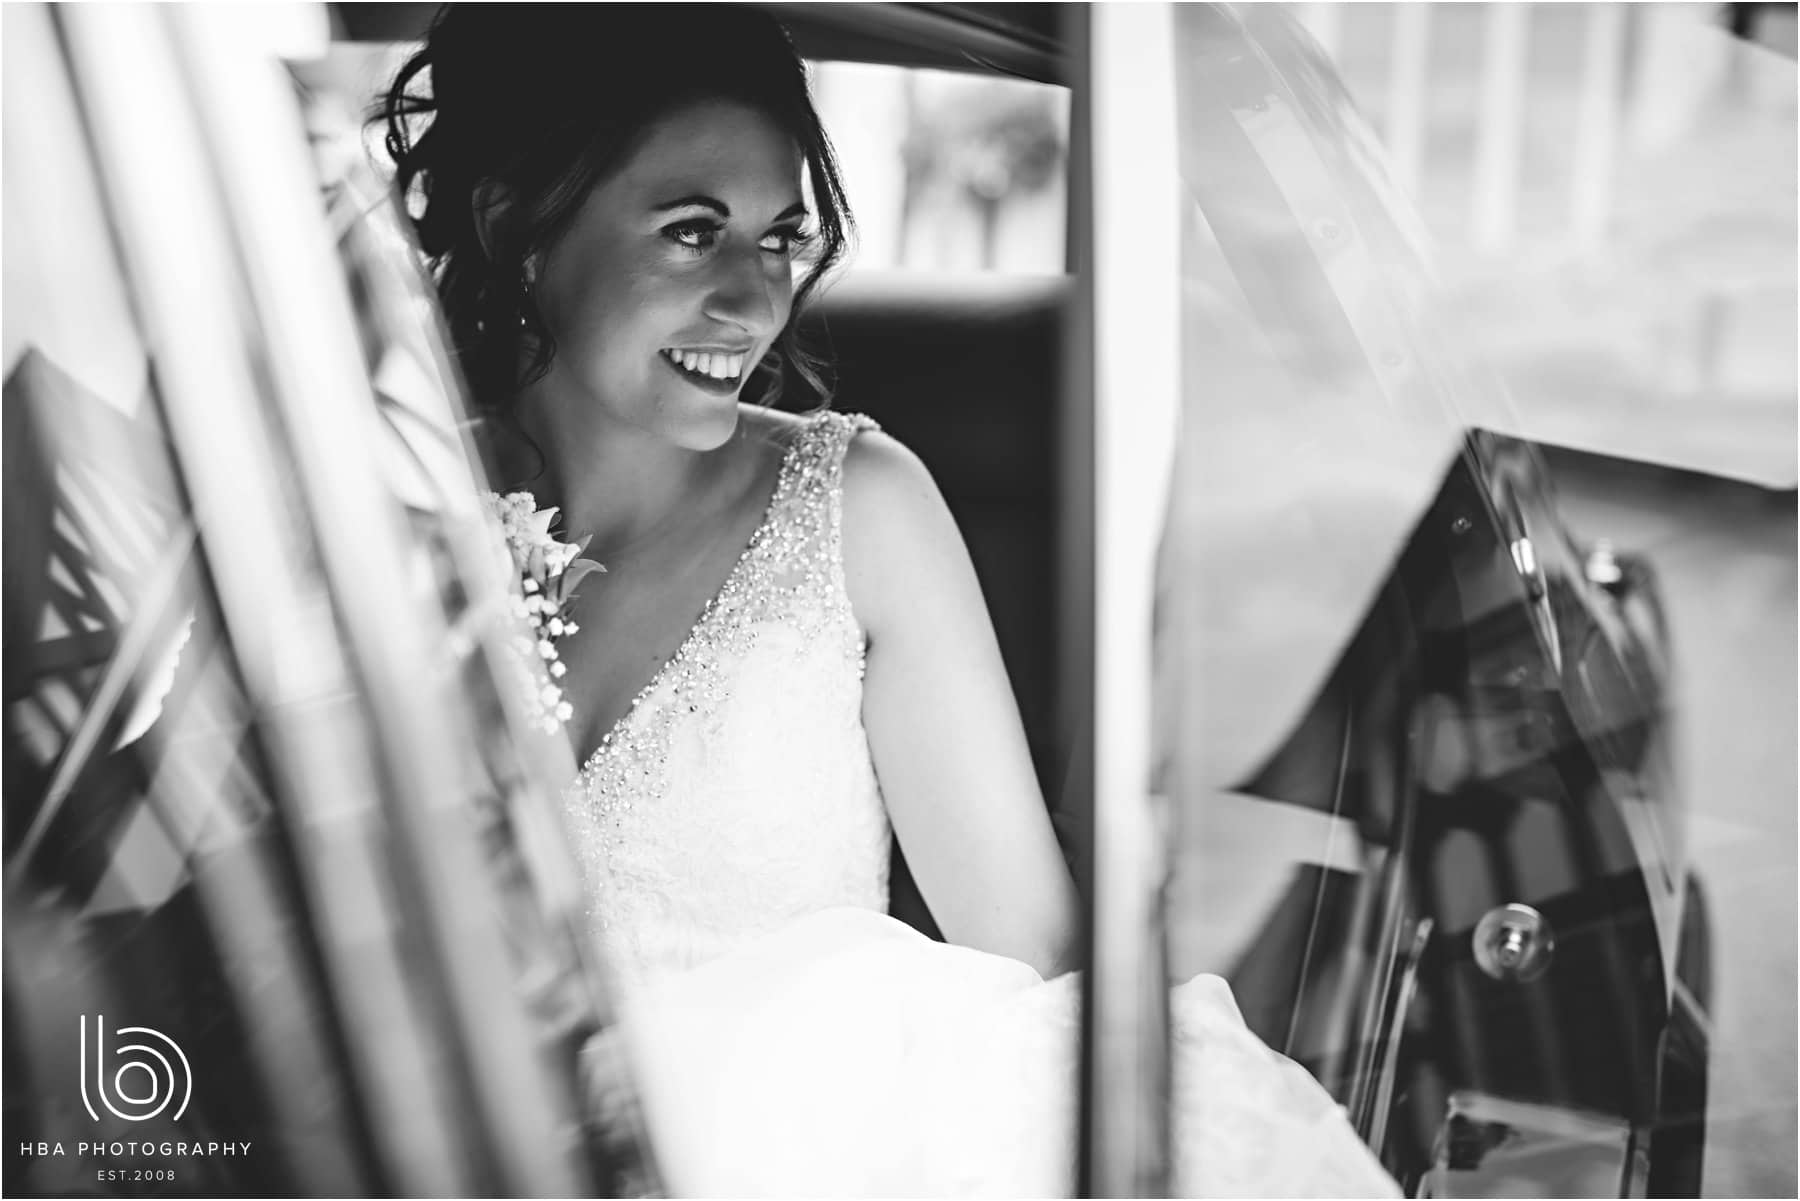 the bride in the car arriving at the venue